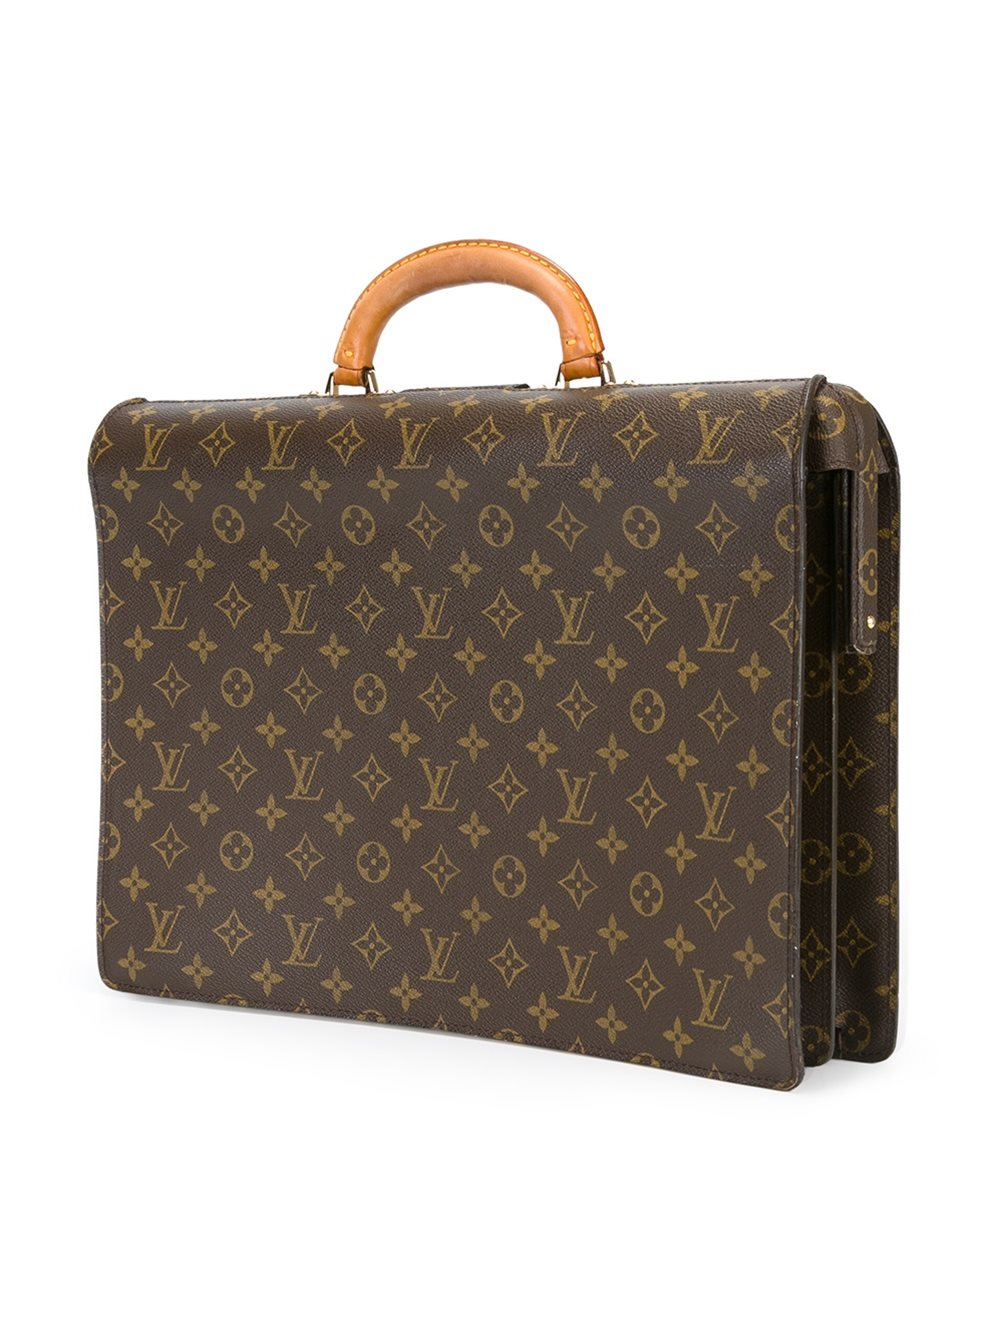 Lyst - Louis vuitton Logo Print Briefcase in Brown